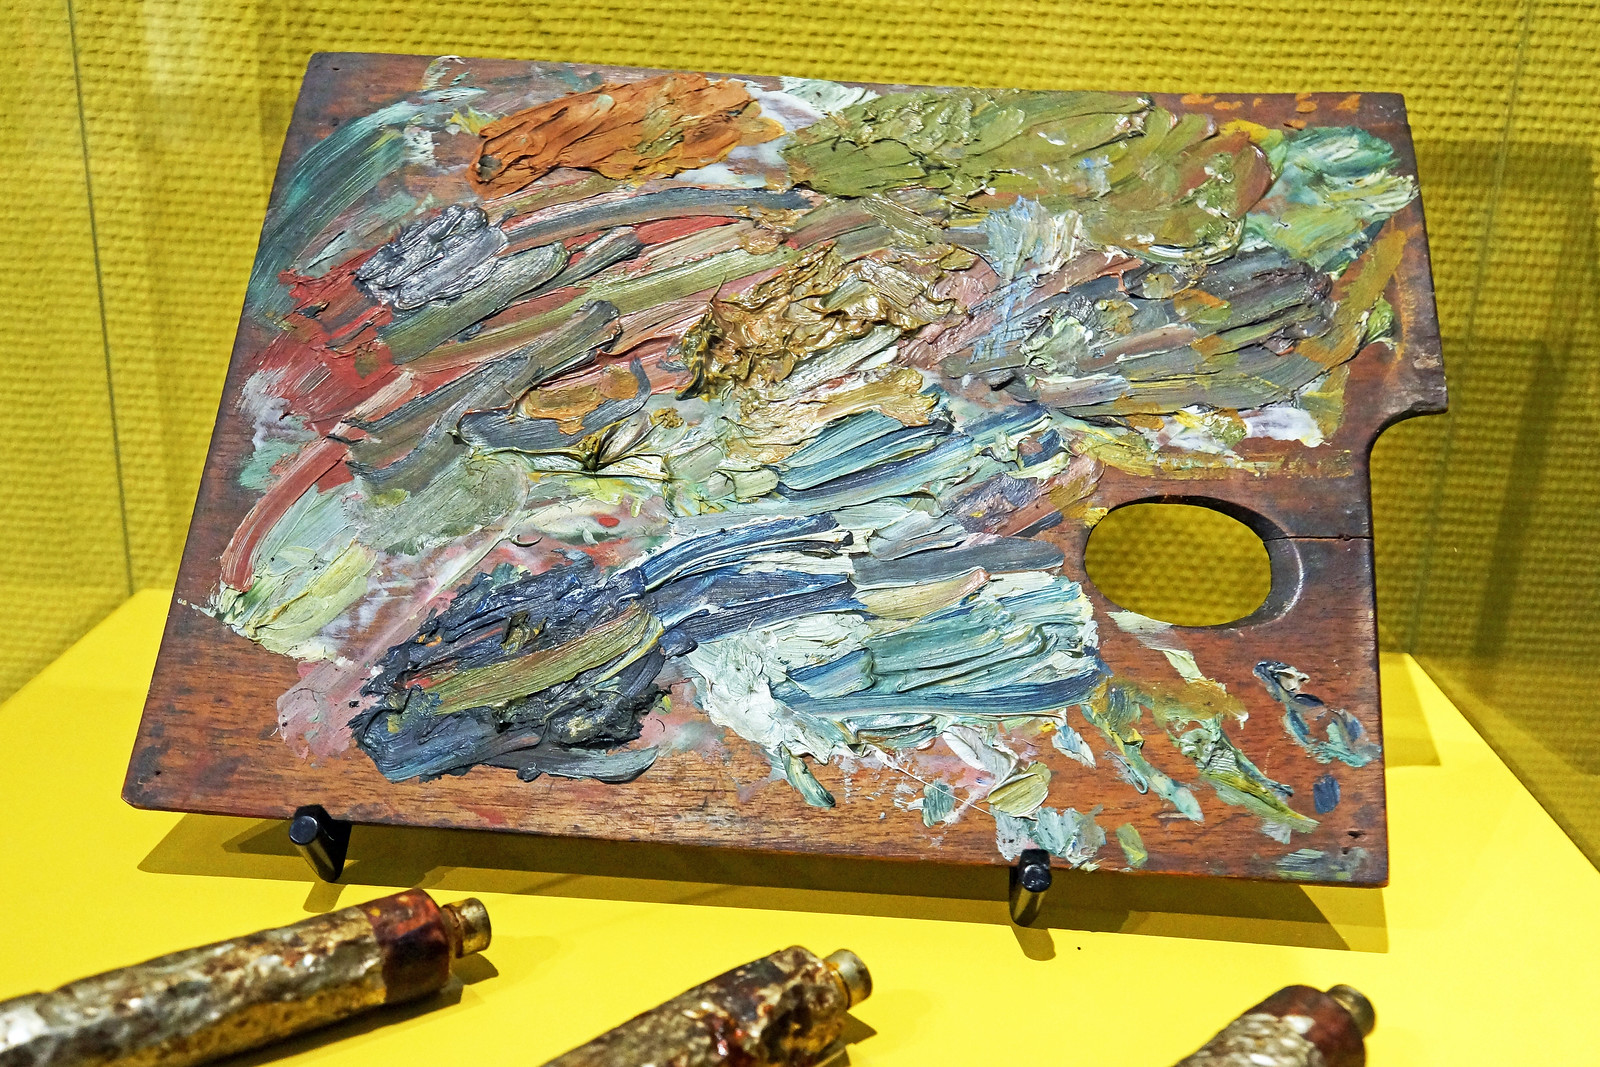 Netherlands-3963 - Van Gogh's Palette | by archer10 (Dennis) (50M Views)